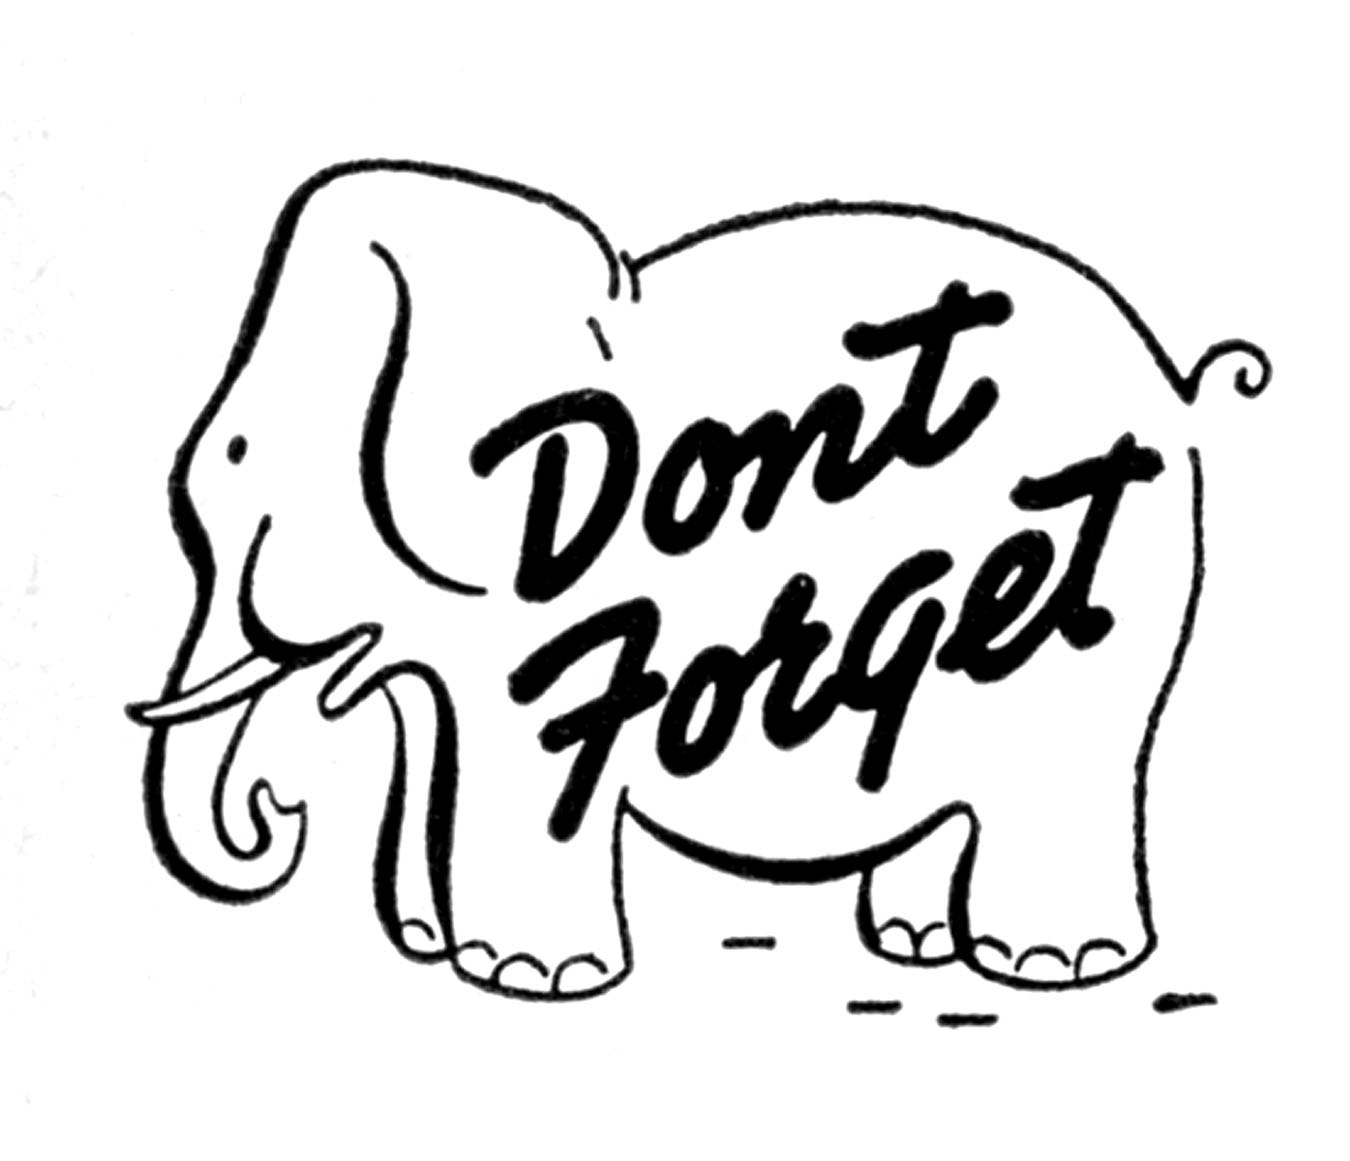 Reminder clipart black and white royalty free Free Reminders Cliparts, Download Free Clip Art, Free Clip ... royalty free